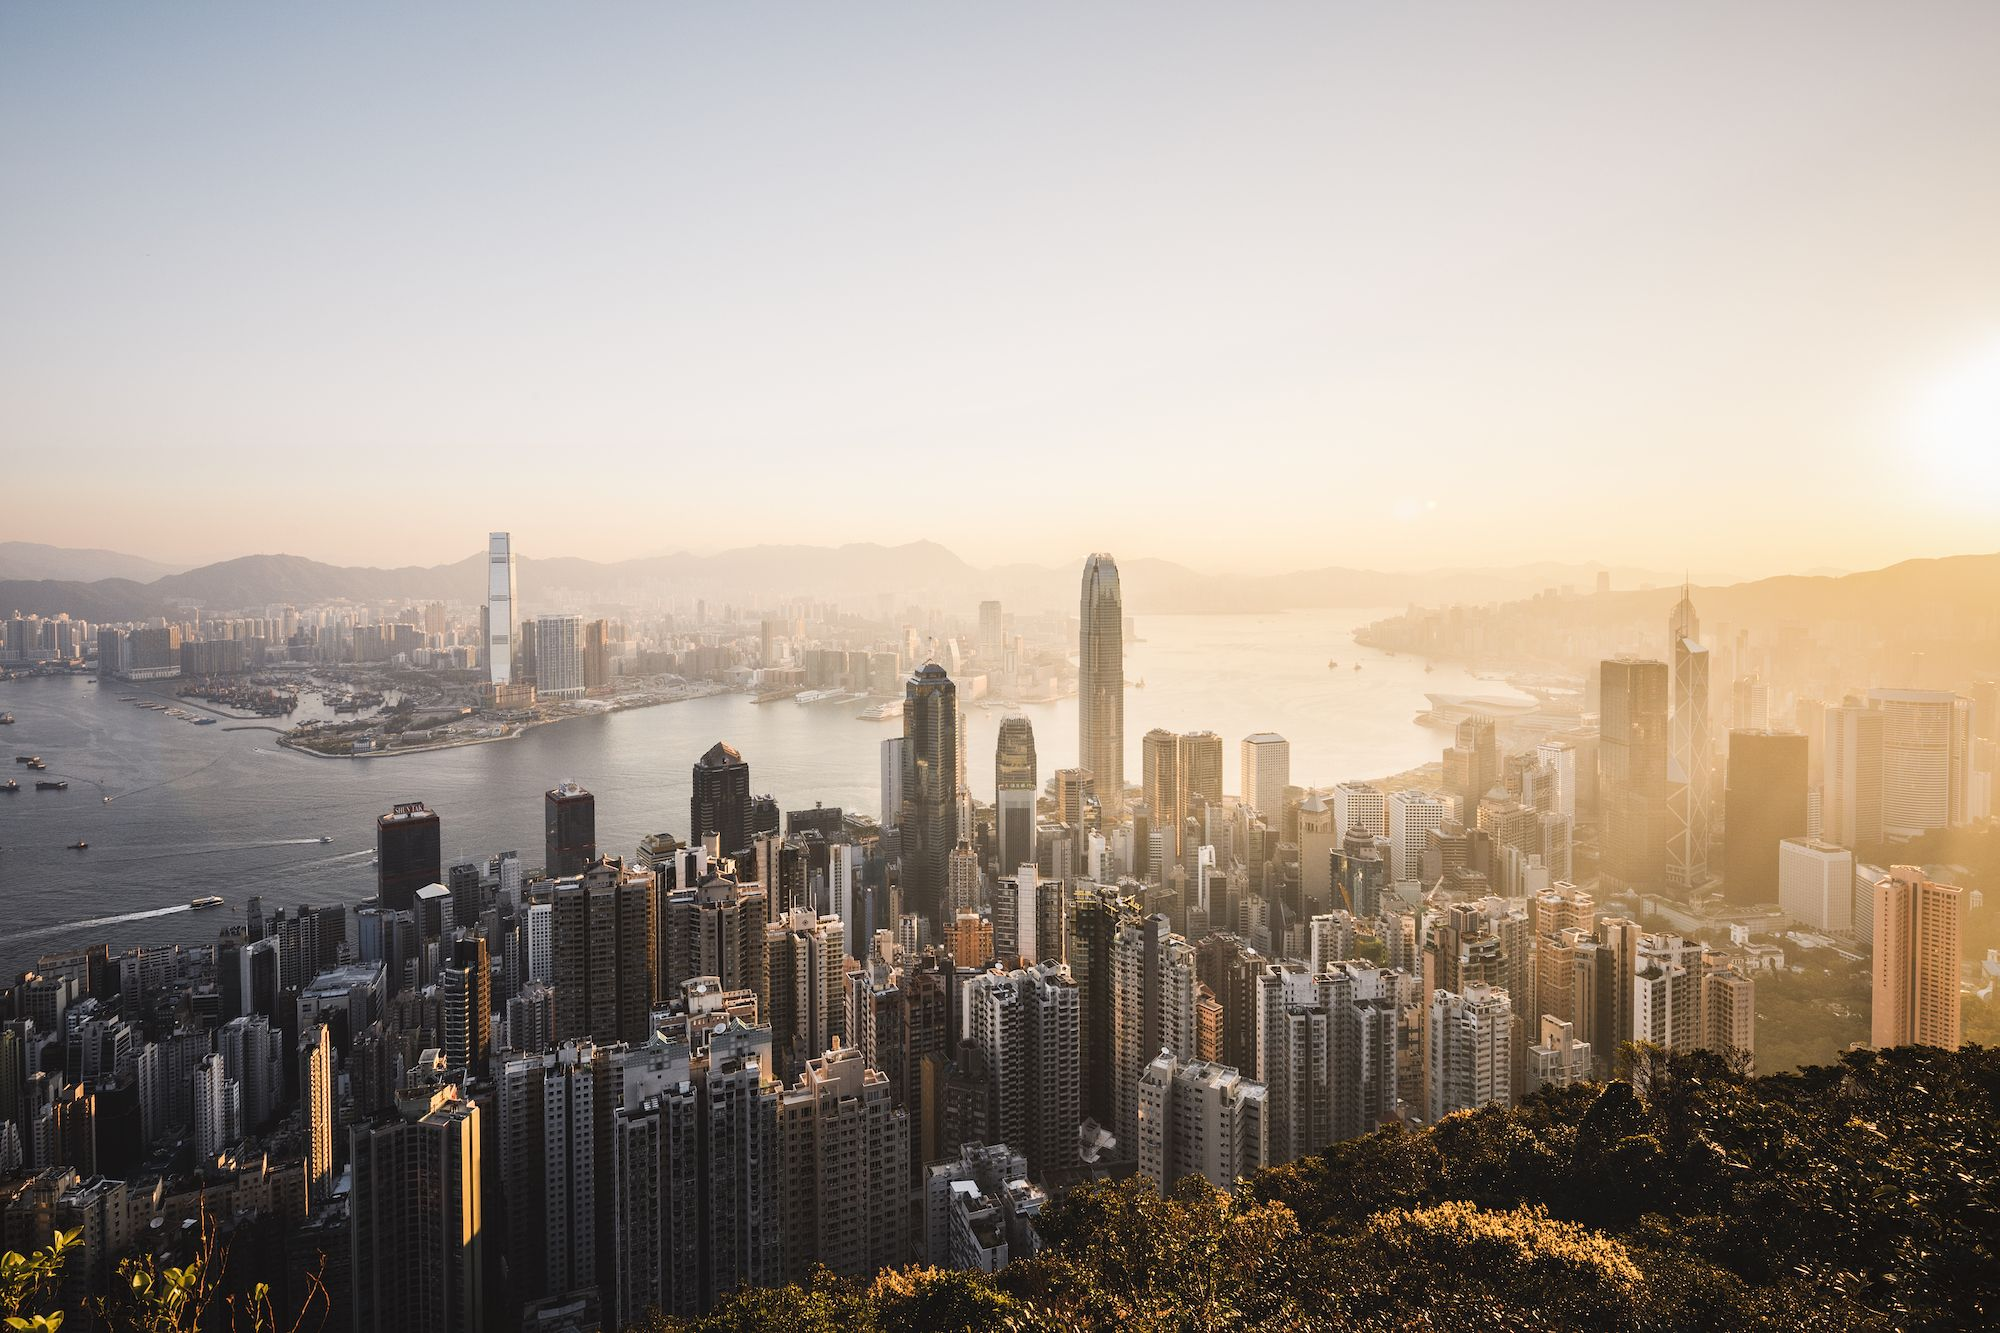 New Social Distancing Rules for Covid-19: What You Can Do In Hong Kong